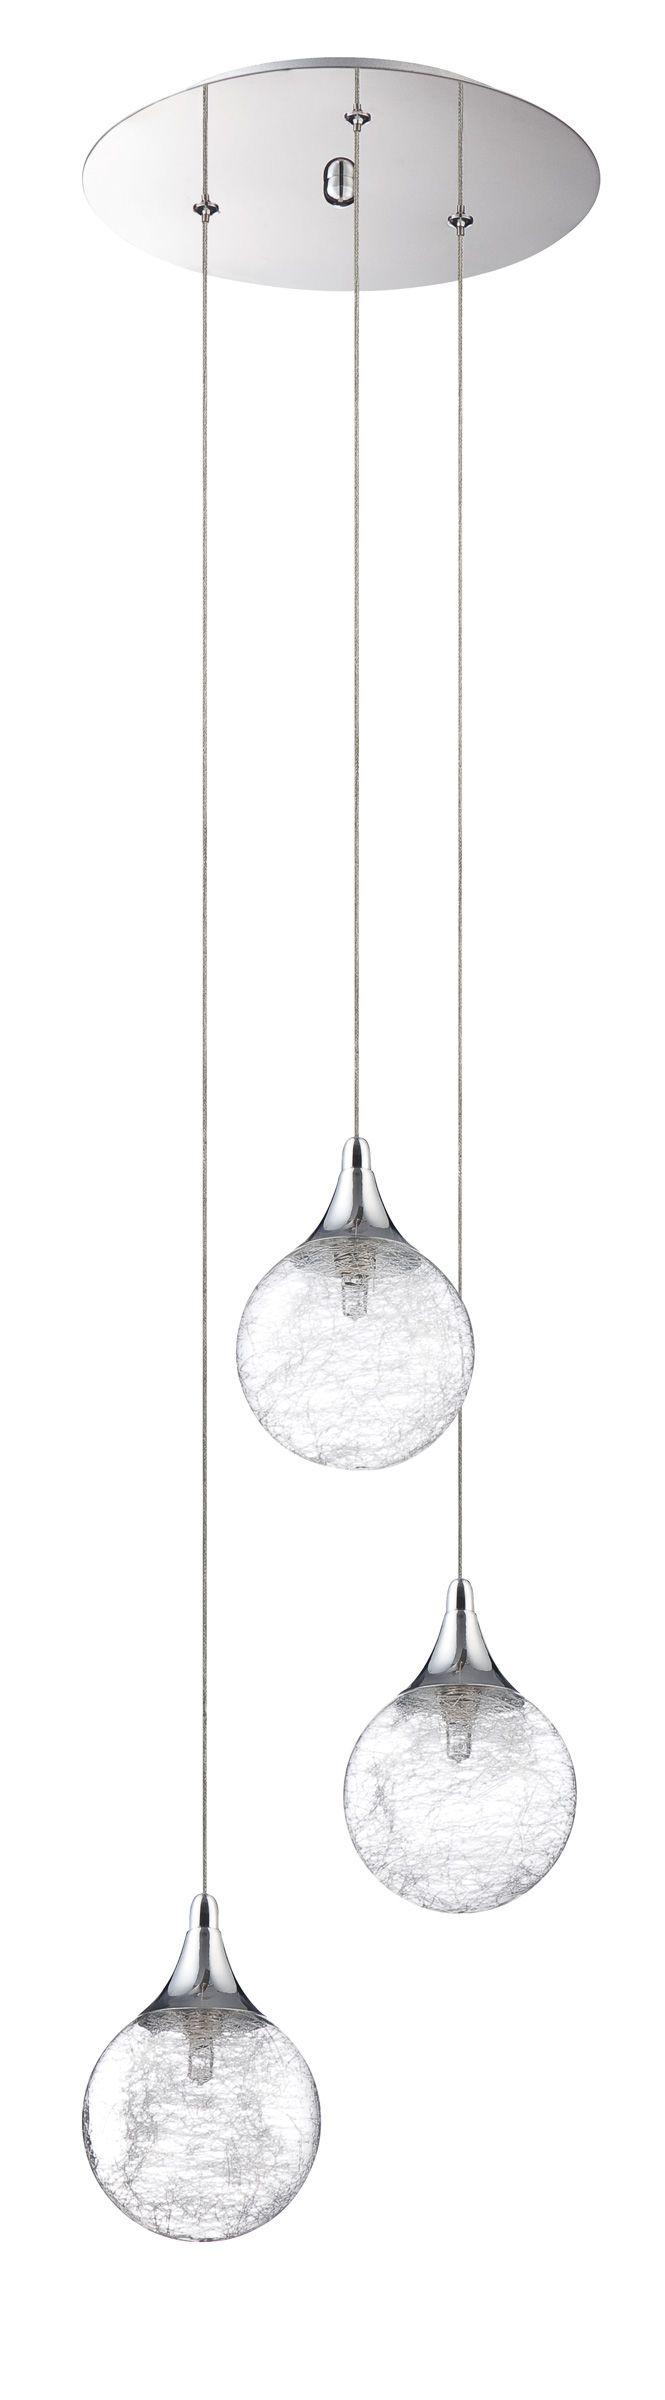 Suspension | Suspendu | Multi-Luminaire